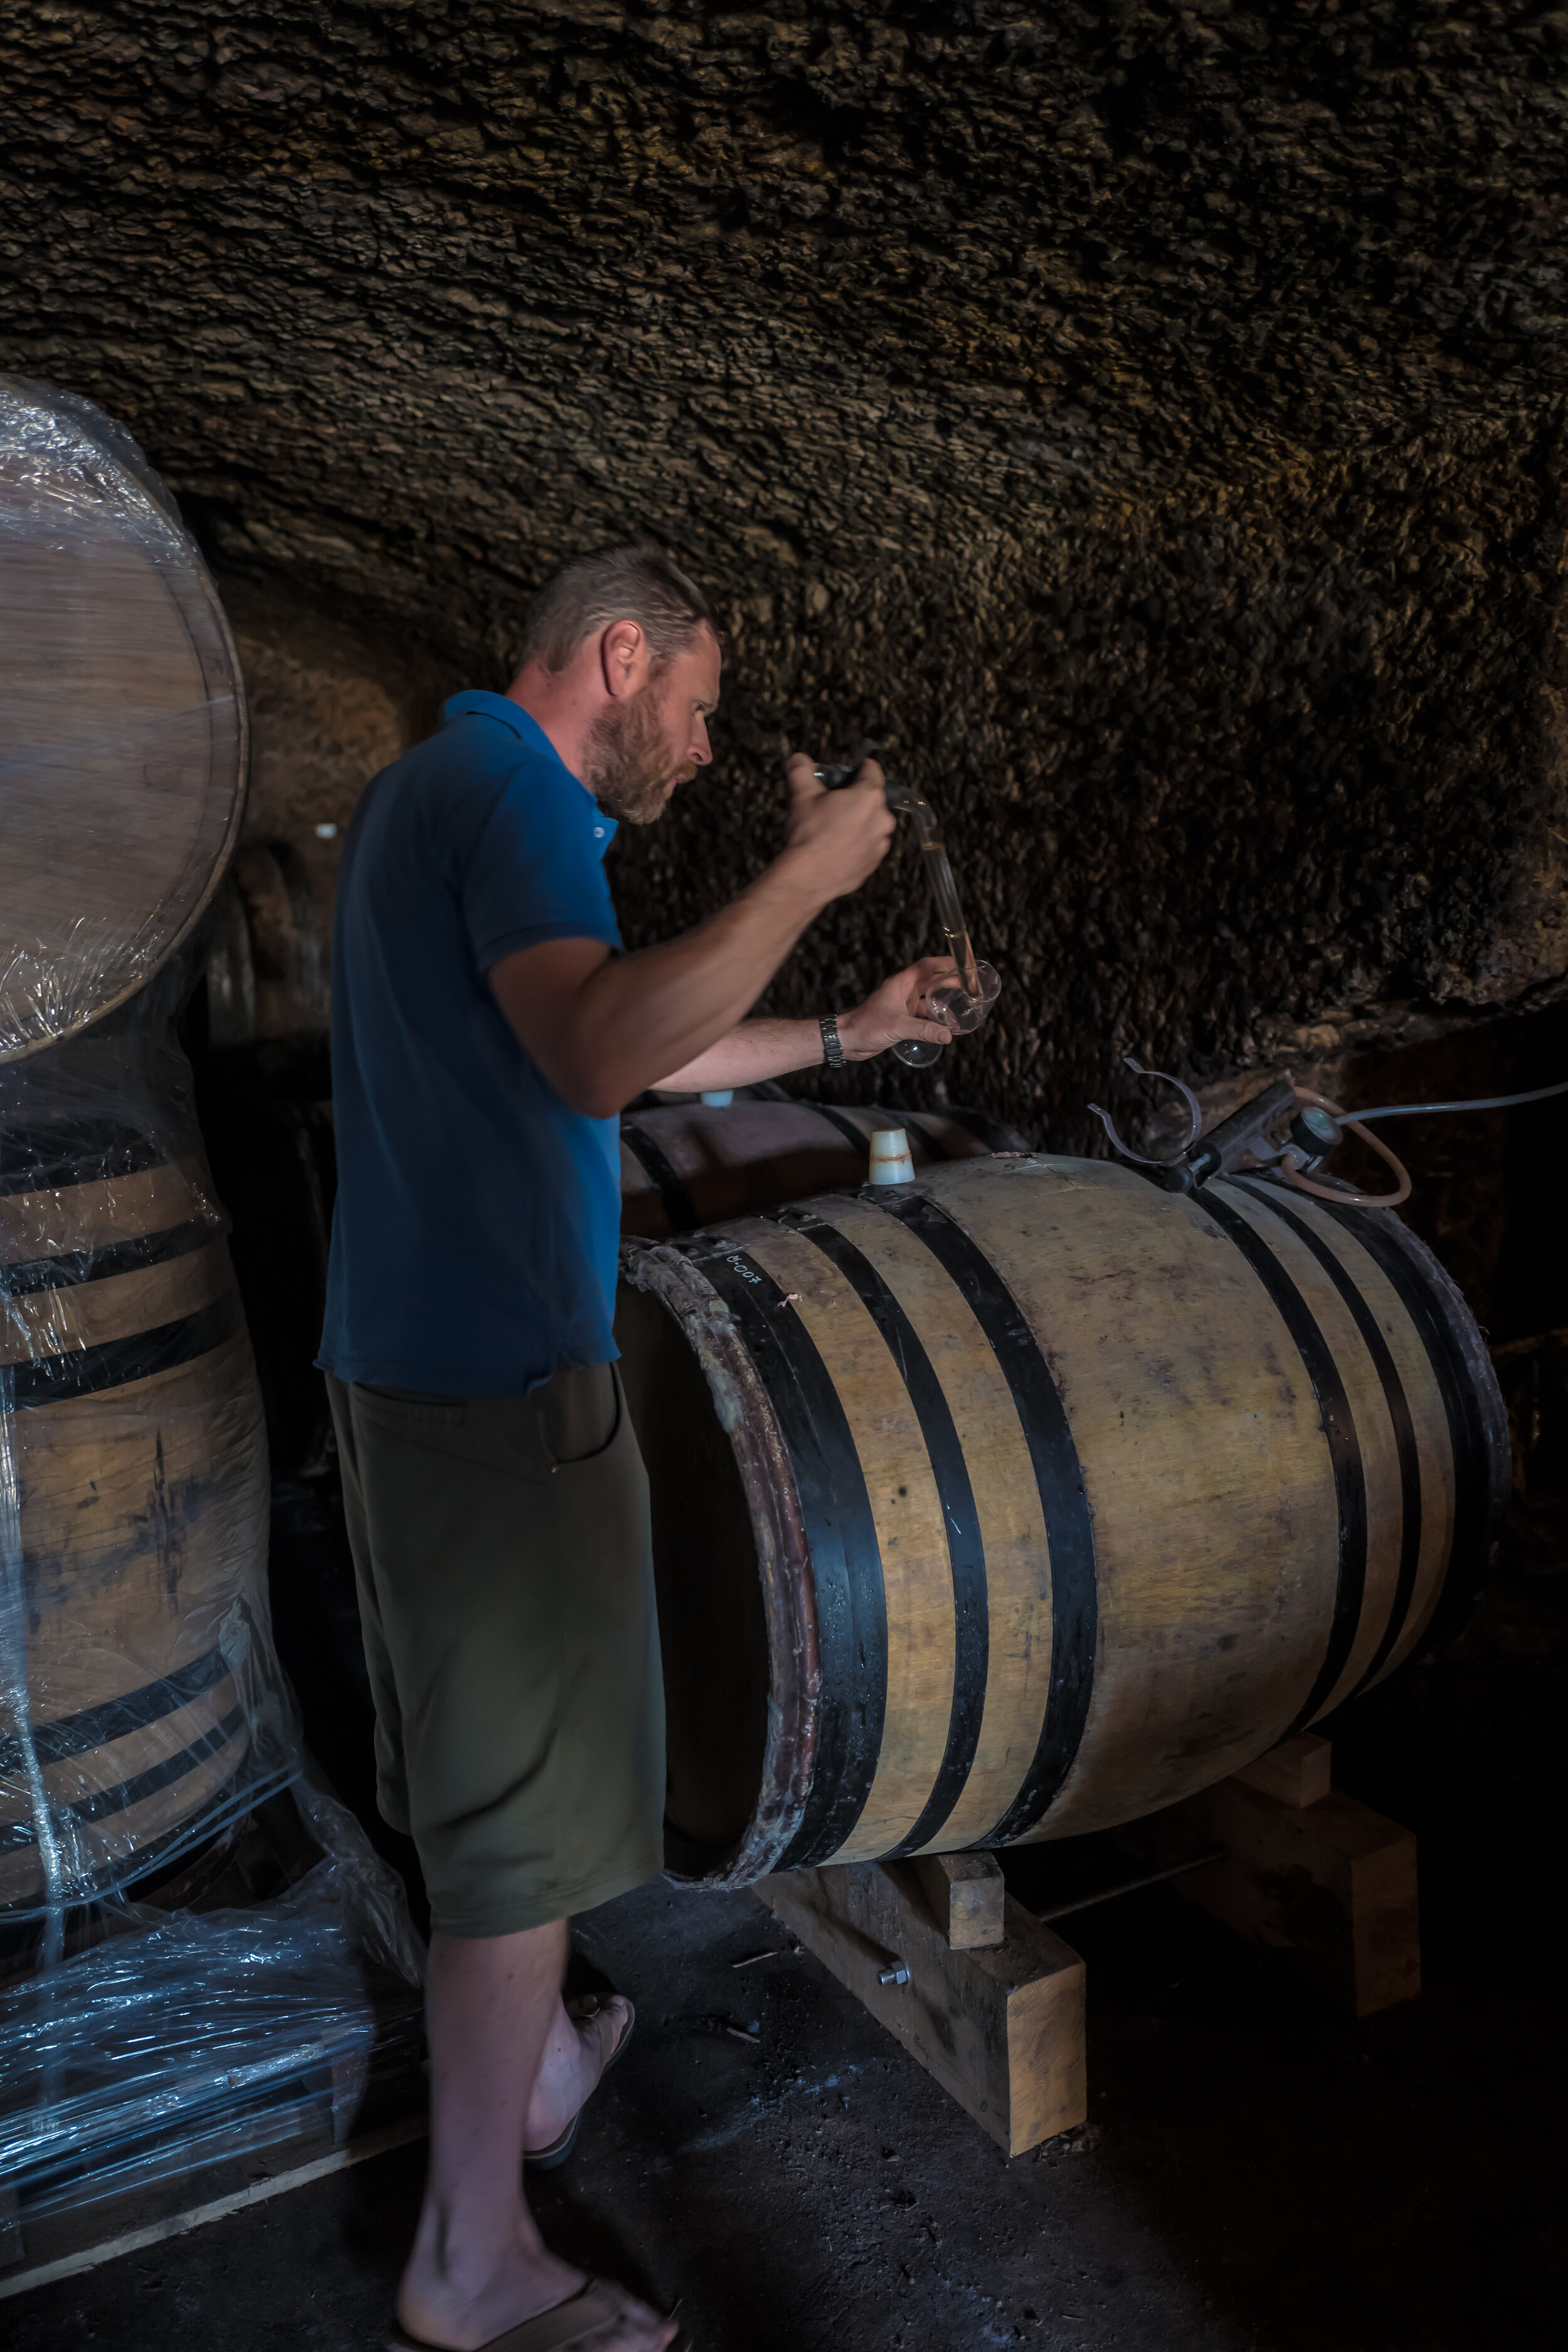 Paul-André Risse taking samples from barrels